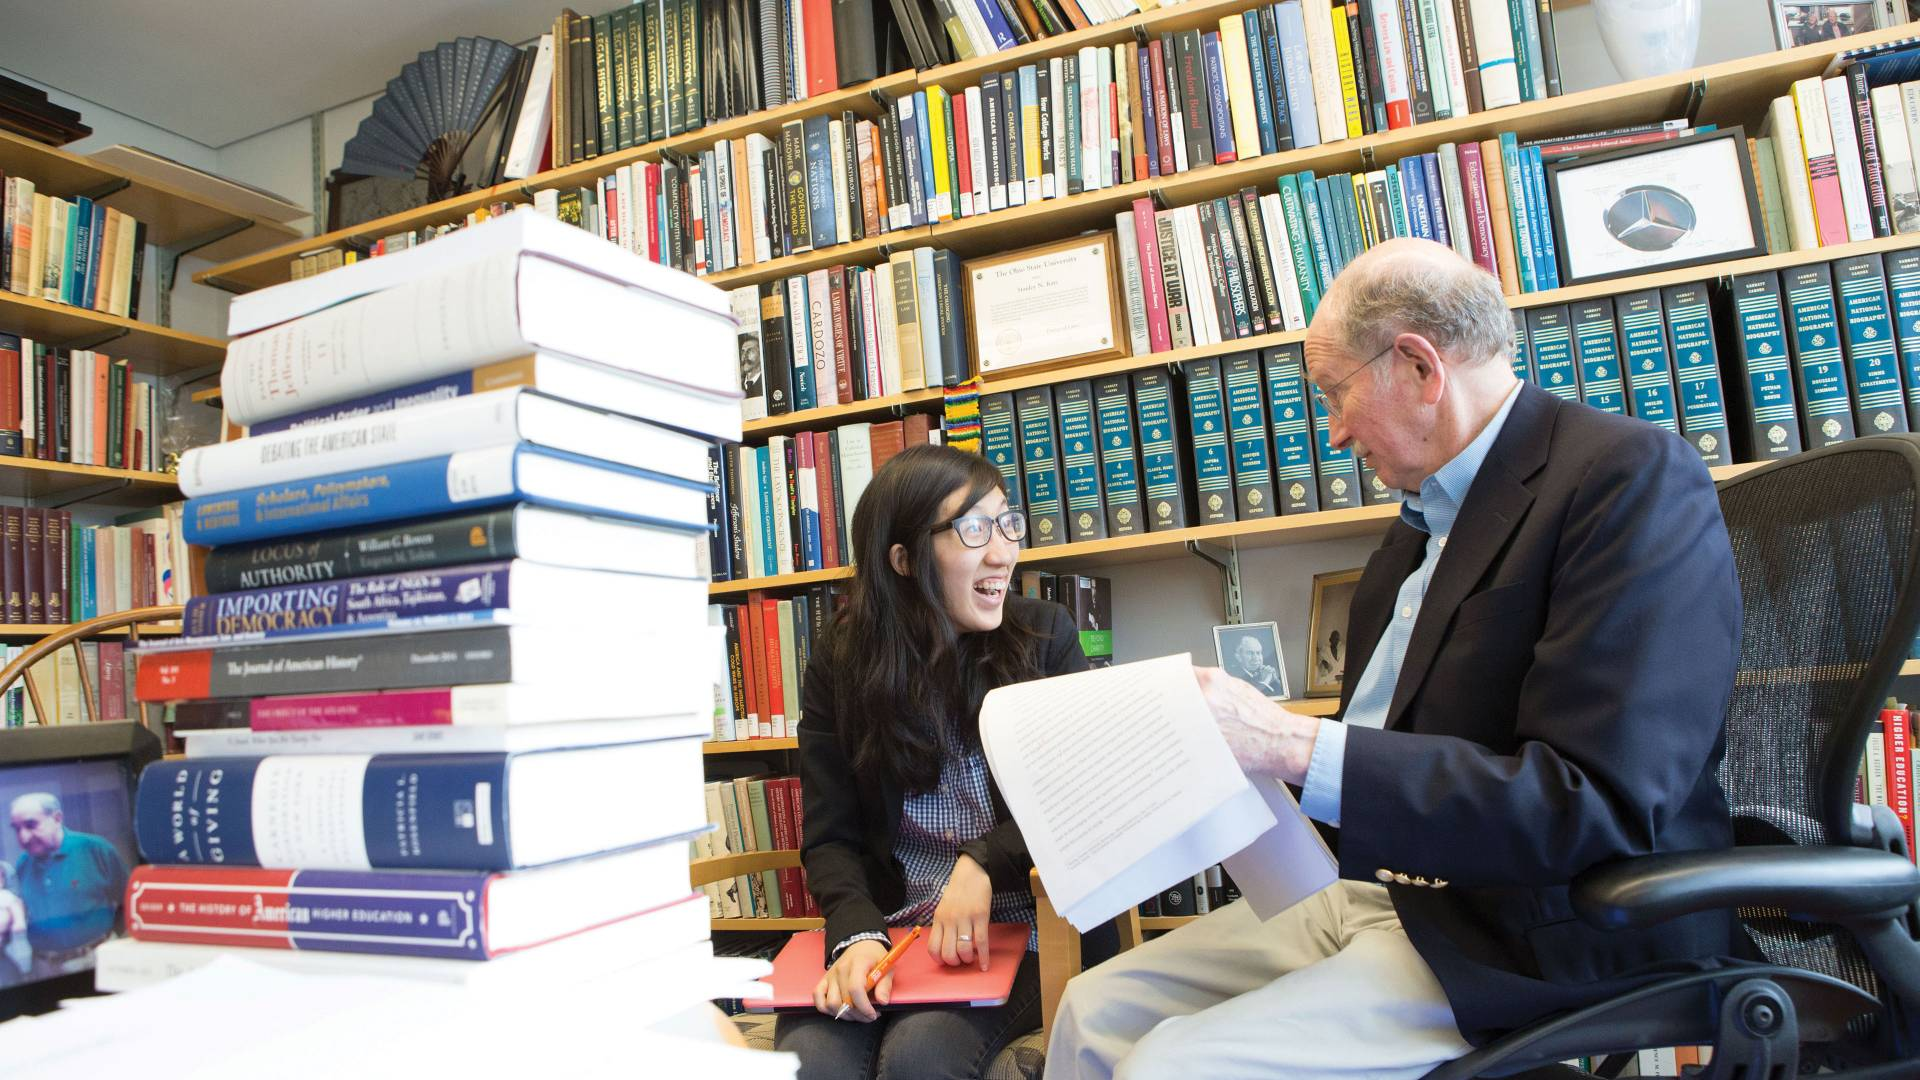 A student and professor sit and talk during an advising session, surrounded by books